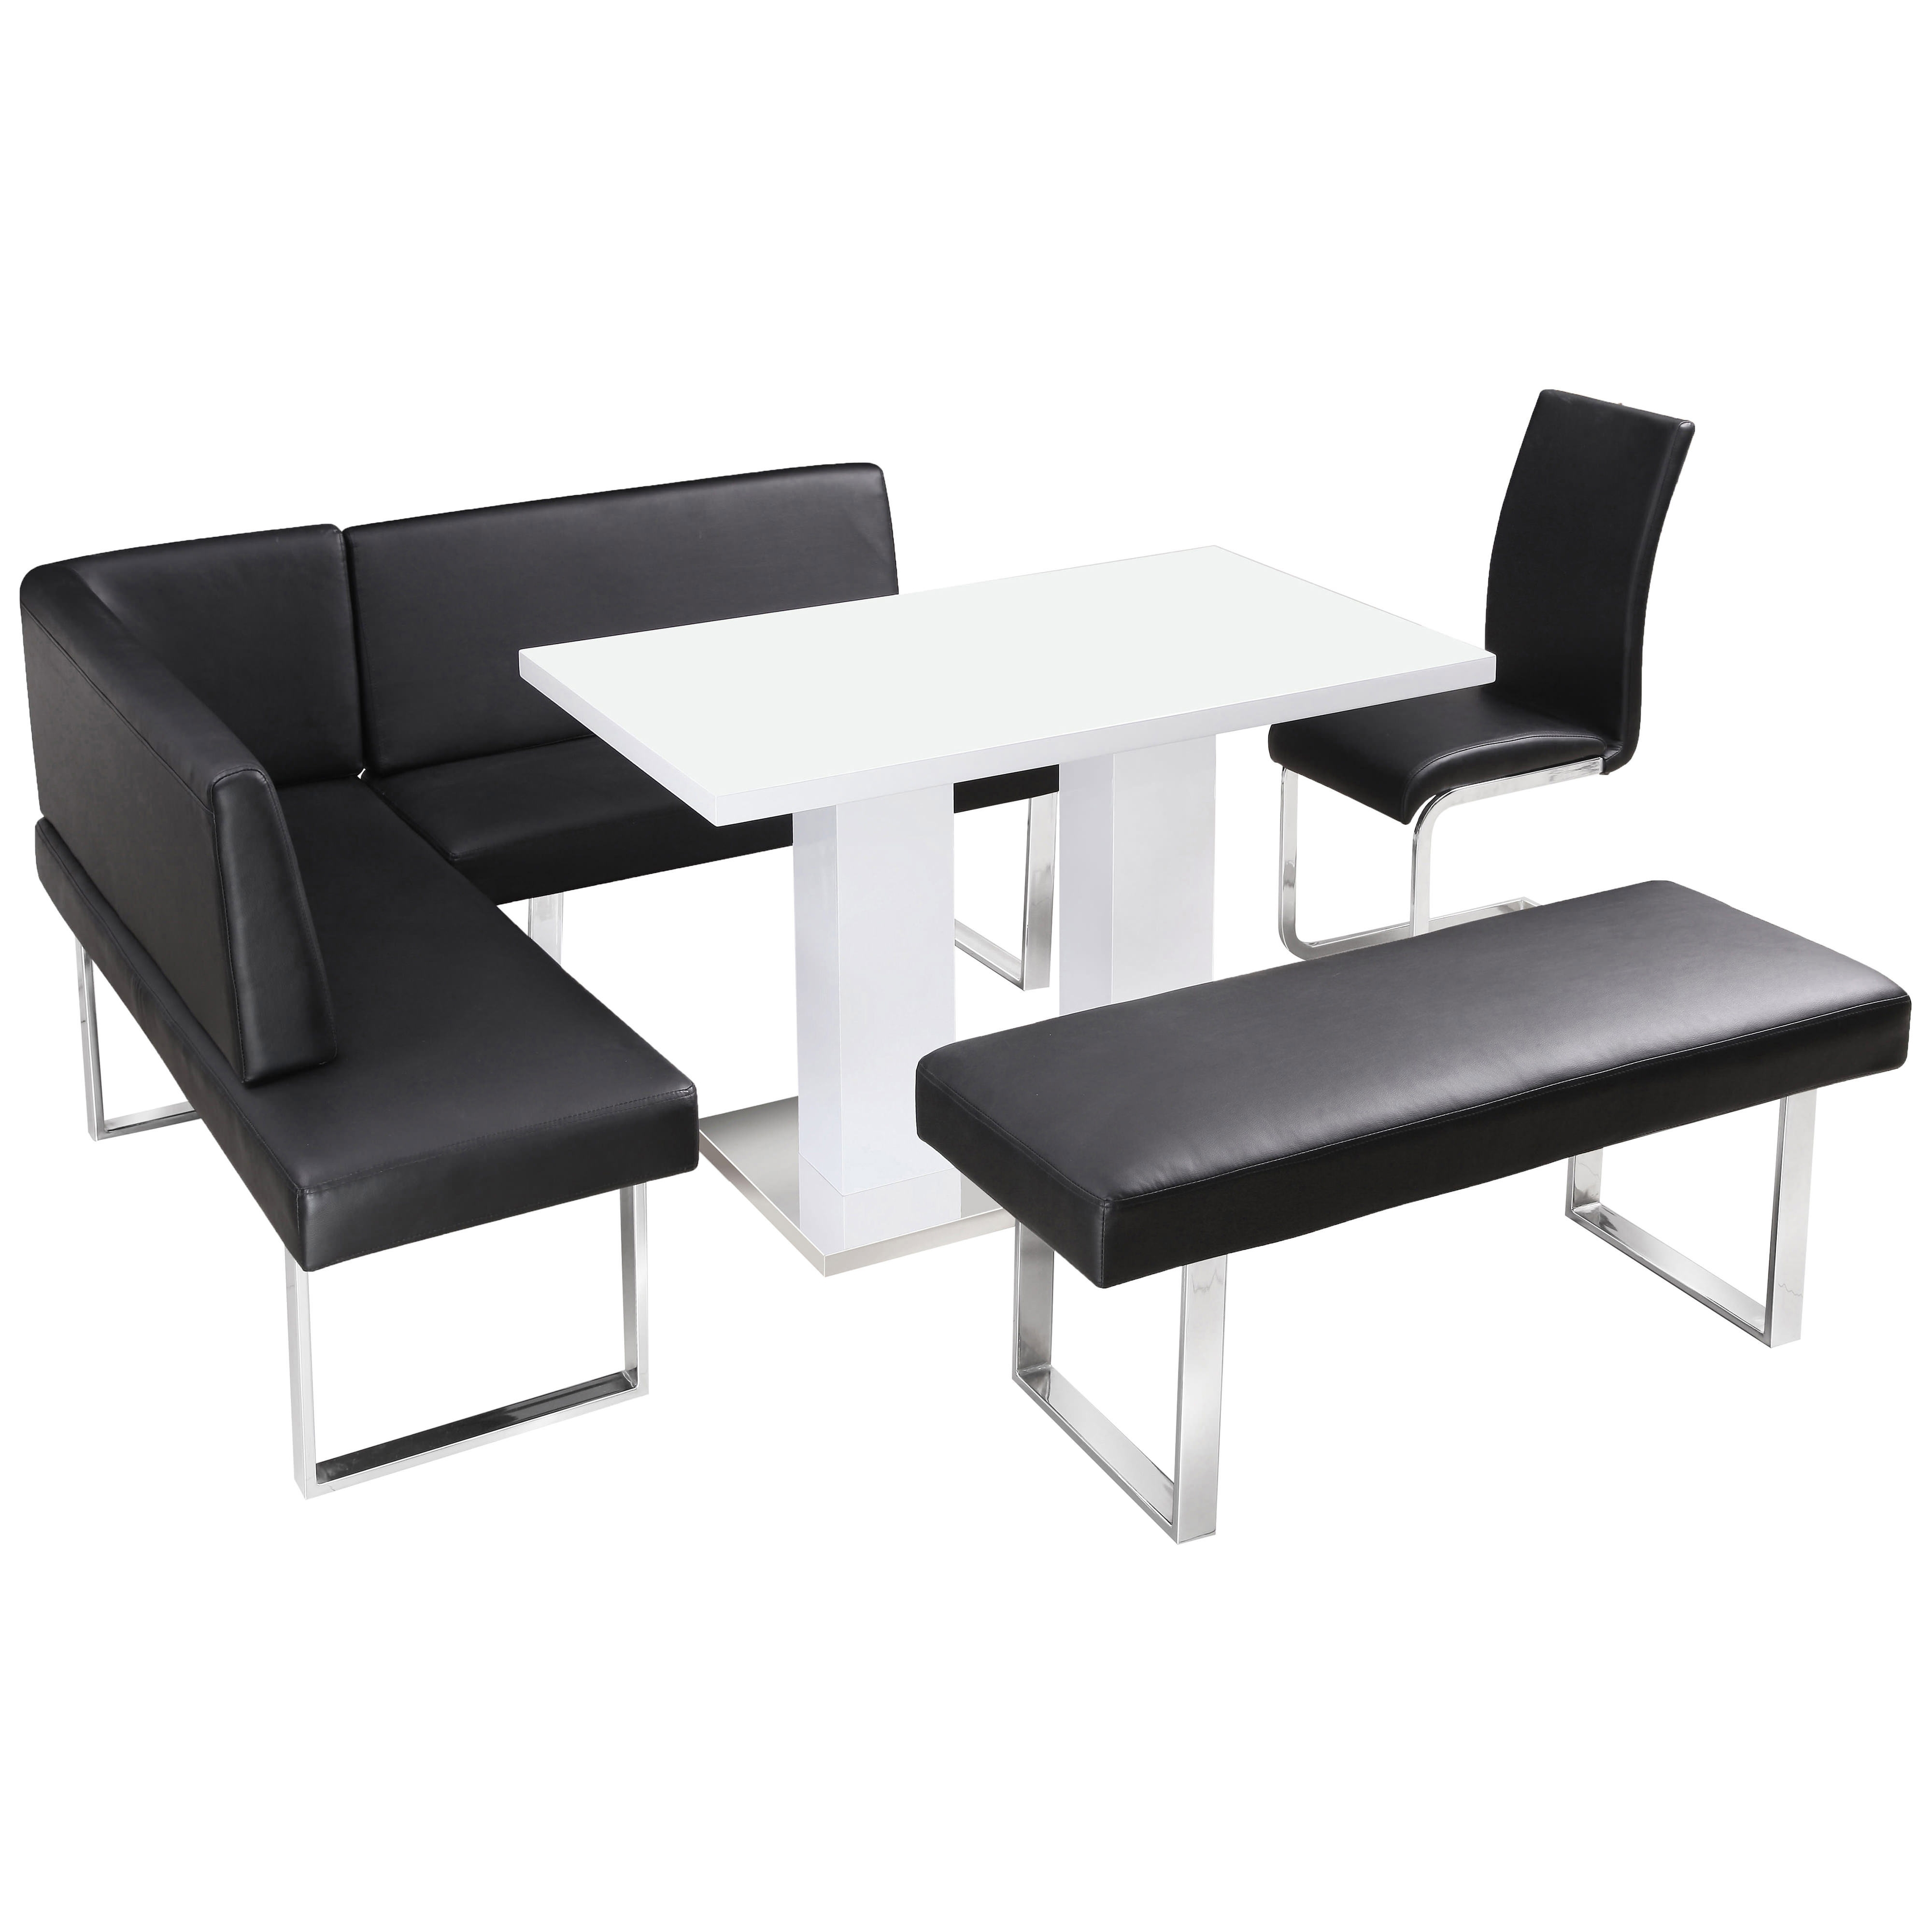 Black Gloss Dining Sets Regarding Trendy High Gloss Dining Table And Chair Set With Corner Bench & 1 Seat (Gallery 17 of 25)